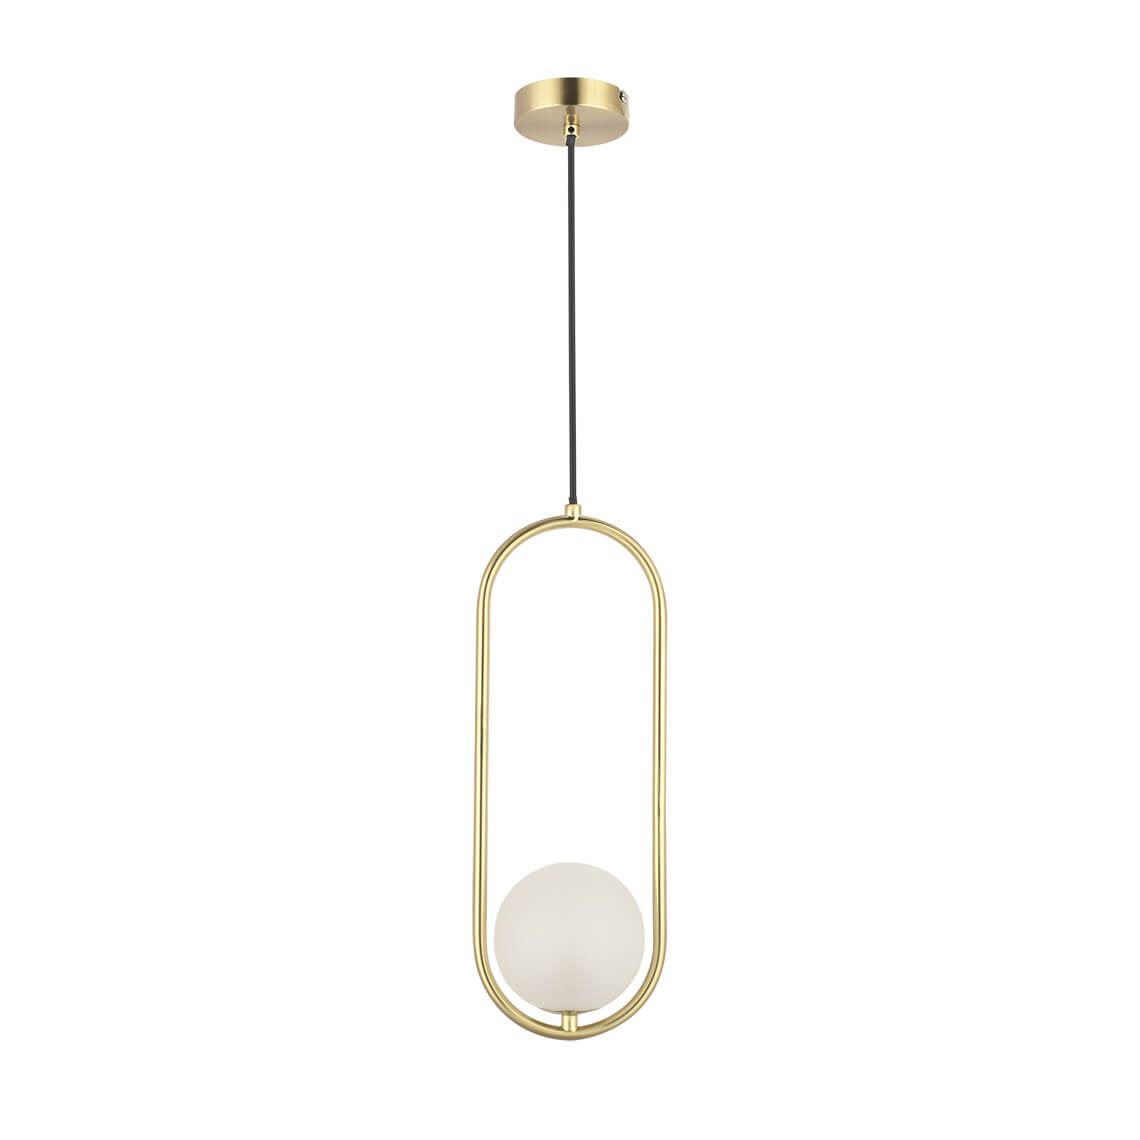 Mayuko Led 2W G9 Ceiling Pendant Light, Colour Size W 15cm x D 12cm x H 127cm in Gold Freedom by Freedom, a Pendant Lighting for sale on Style Sourcebook